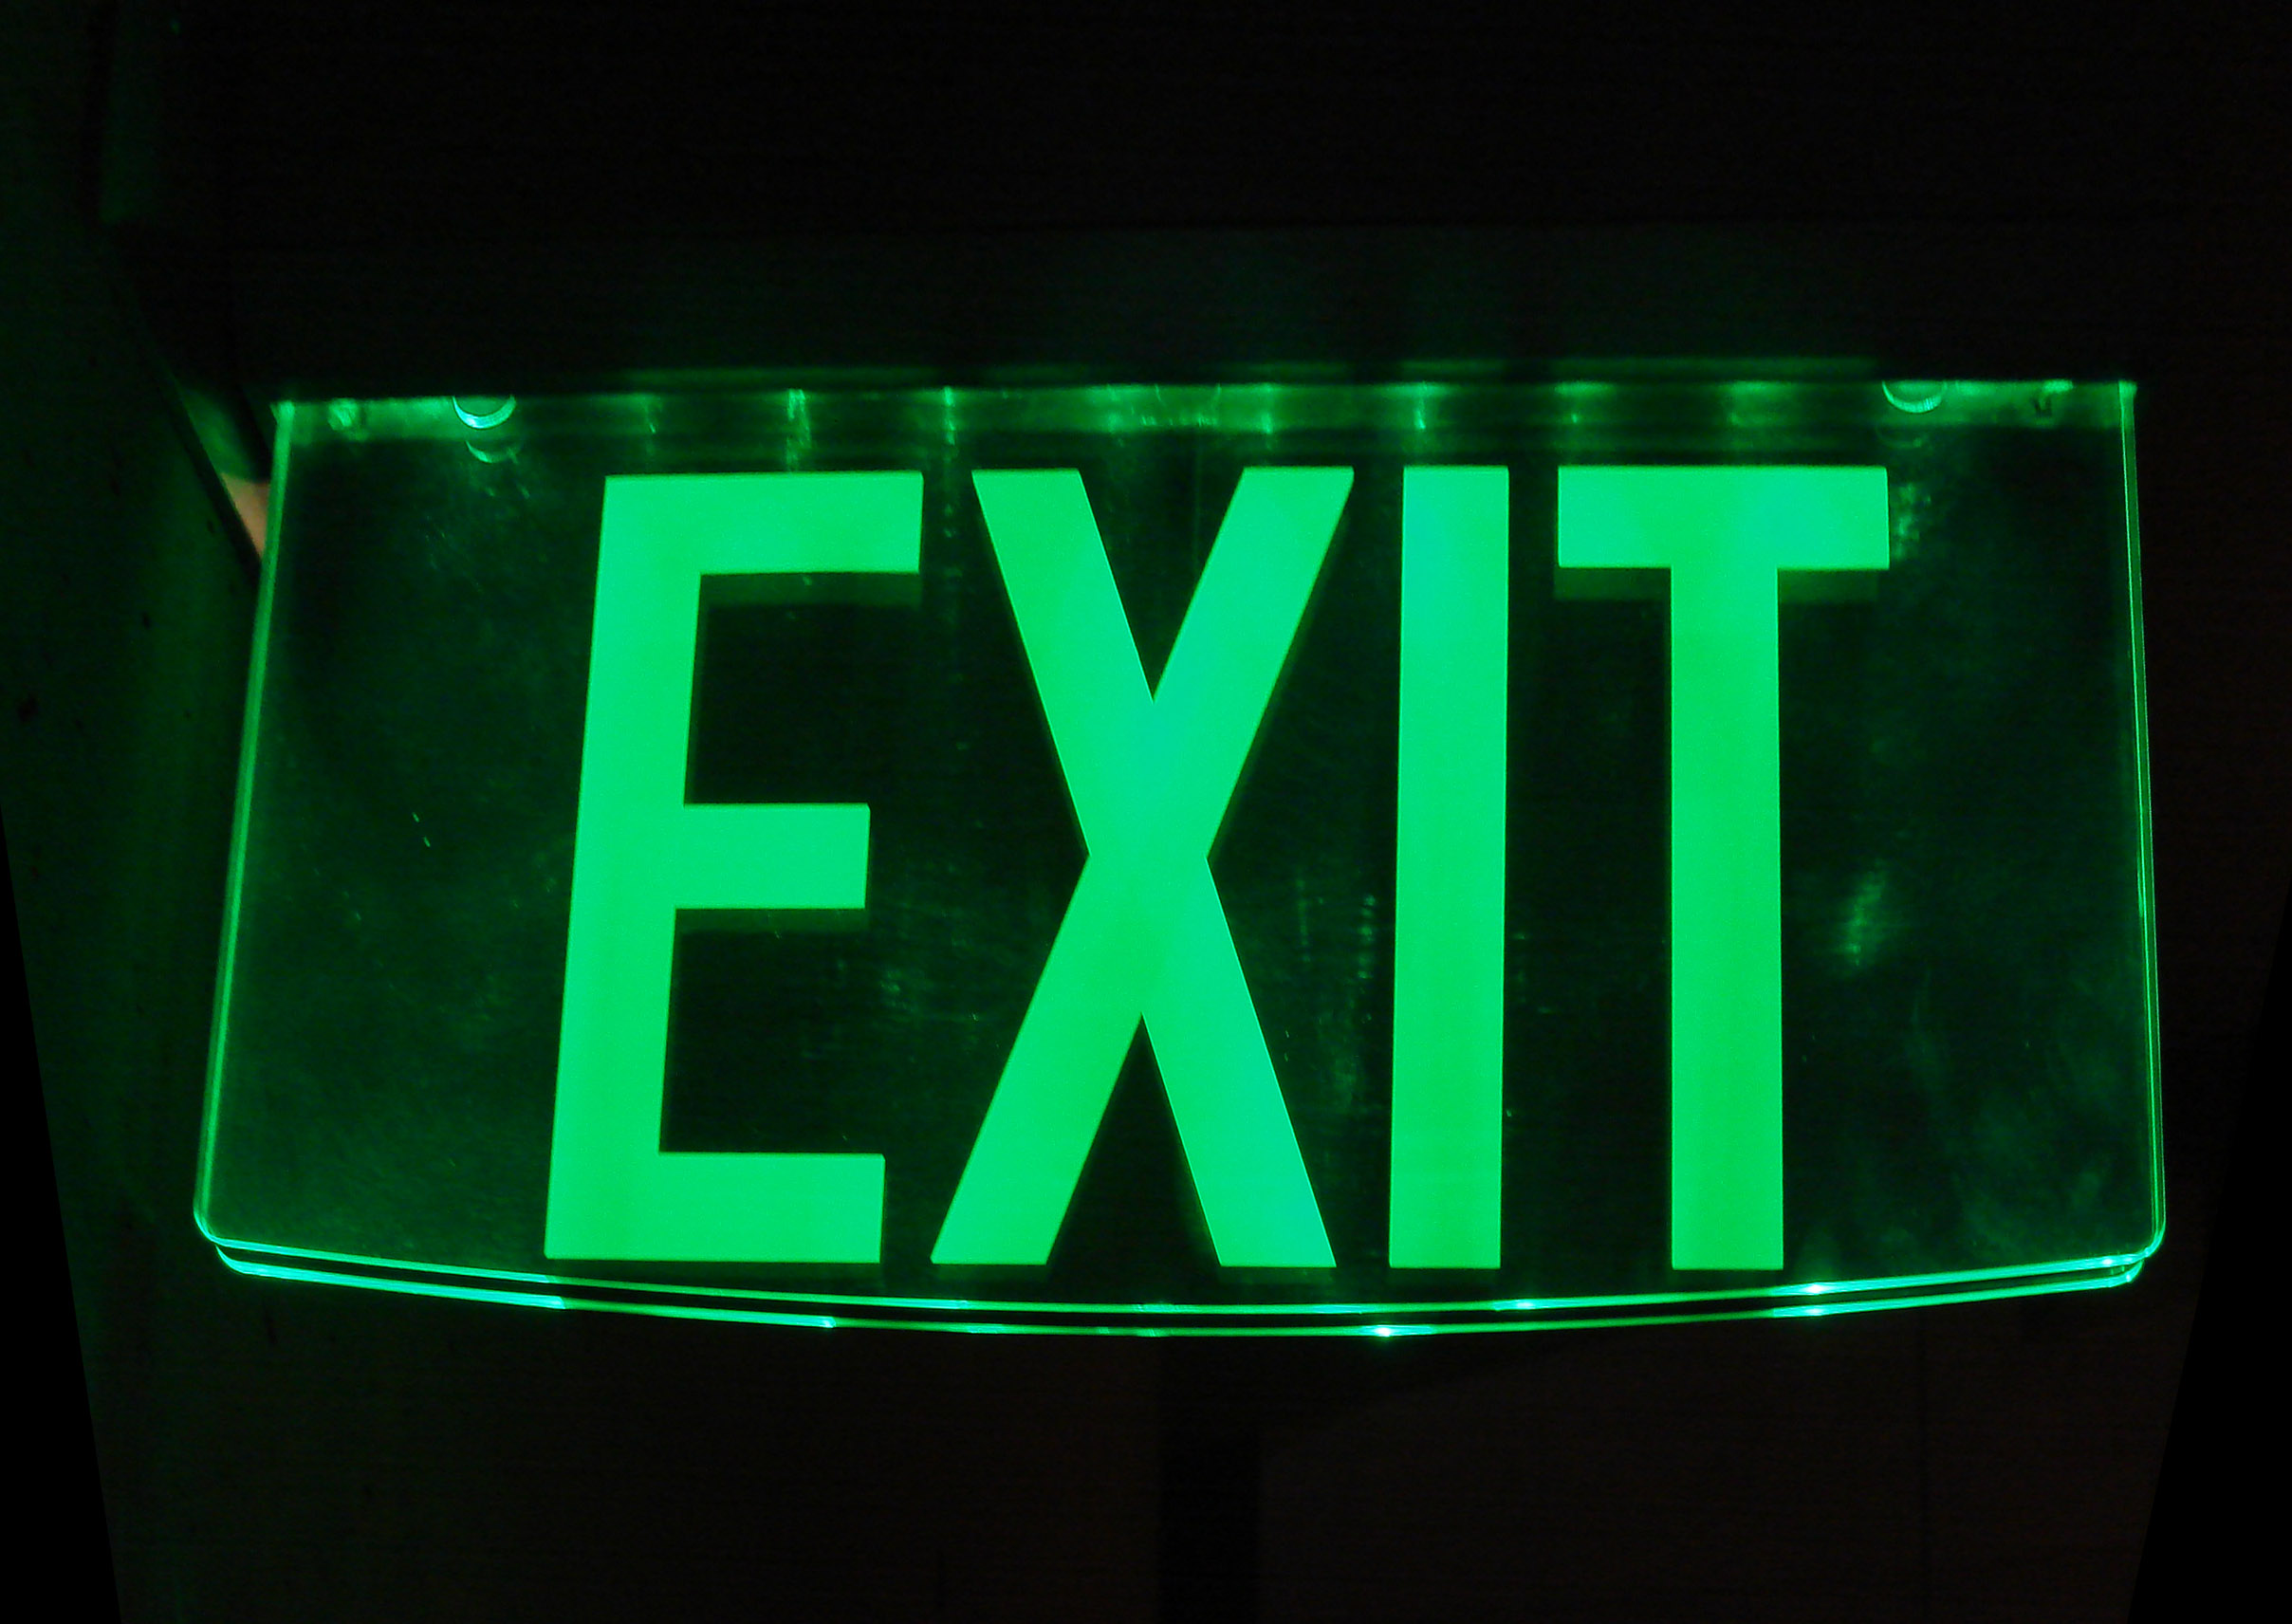 Glass_exit_sign